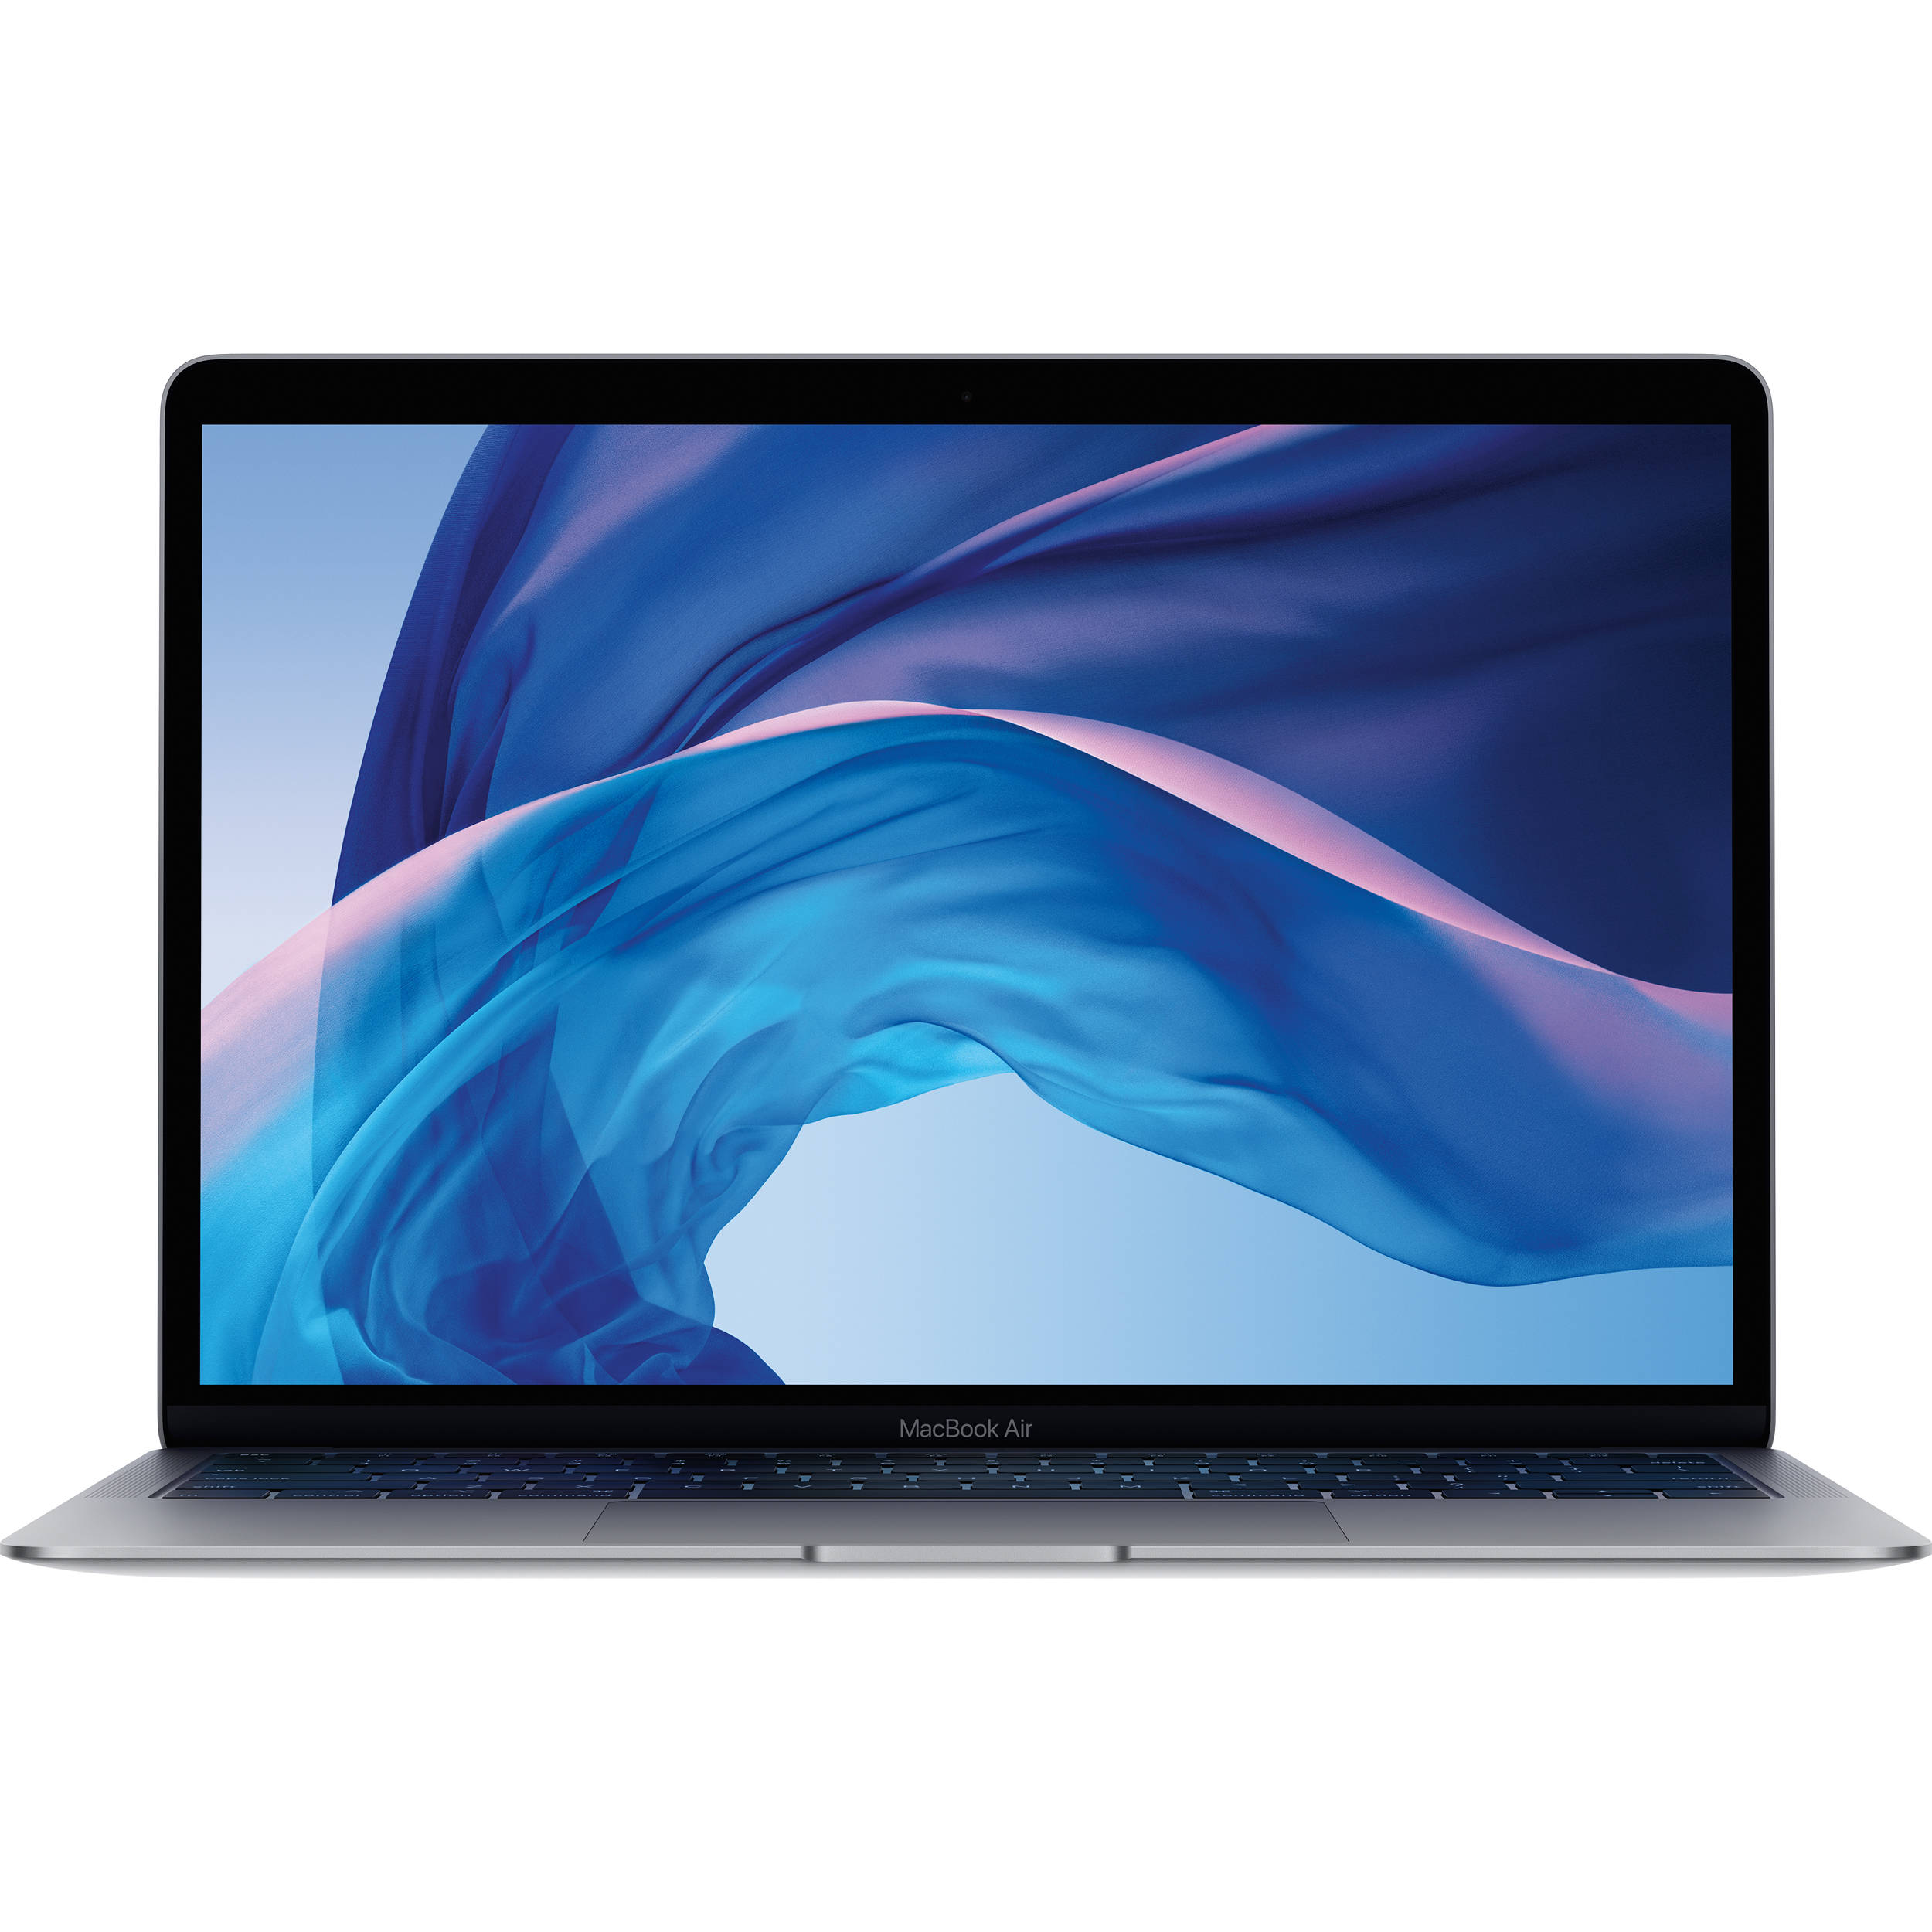 Apple 133 Macbook Air With Retina Display Mre82ll A Bh Controller Determine The Circuit For Ambient Light Sensor Week 8 Late 2018